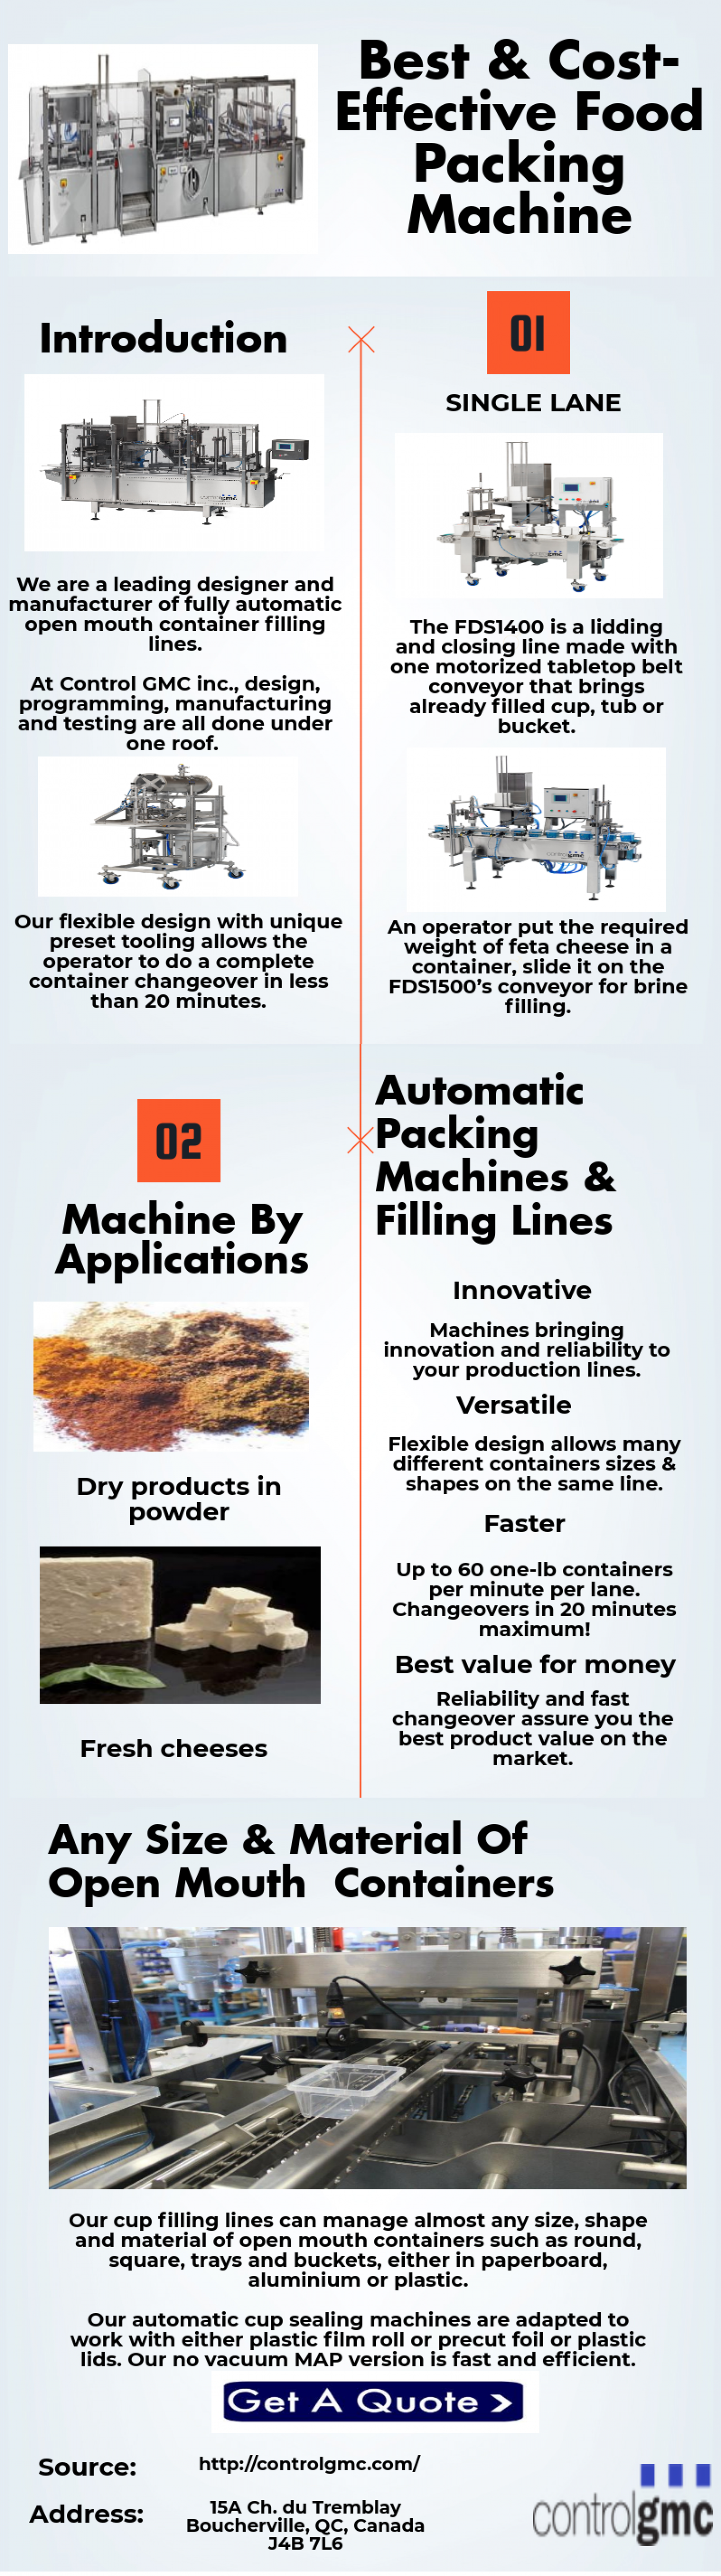 Best & Cost-Effective Food Packing Machine Infographic